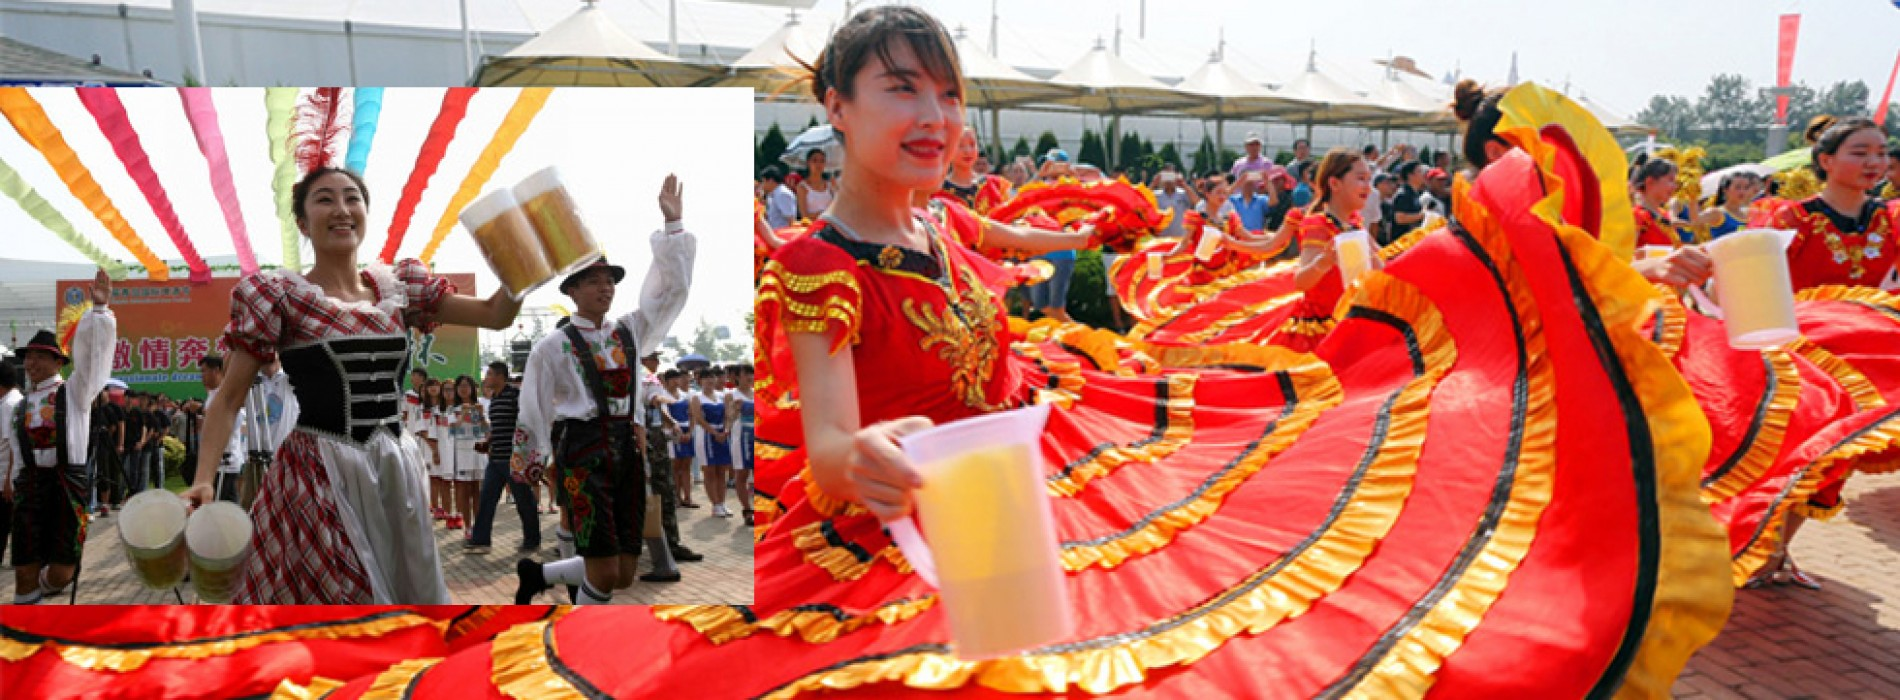 Asia's Oktoberfest is here – the 27th Qingdao International Beer Festival in Shandong